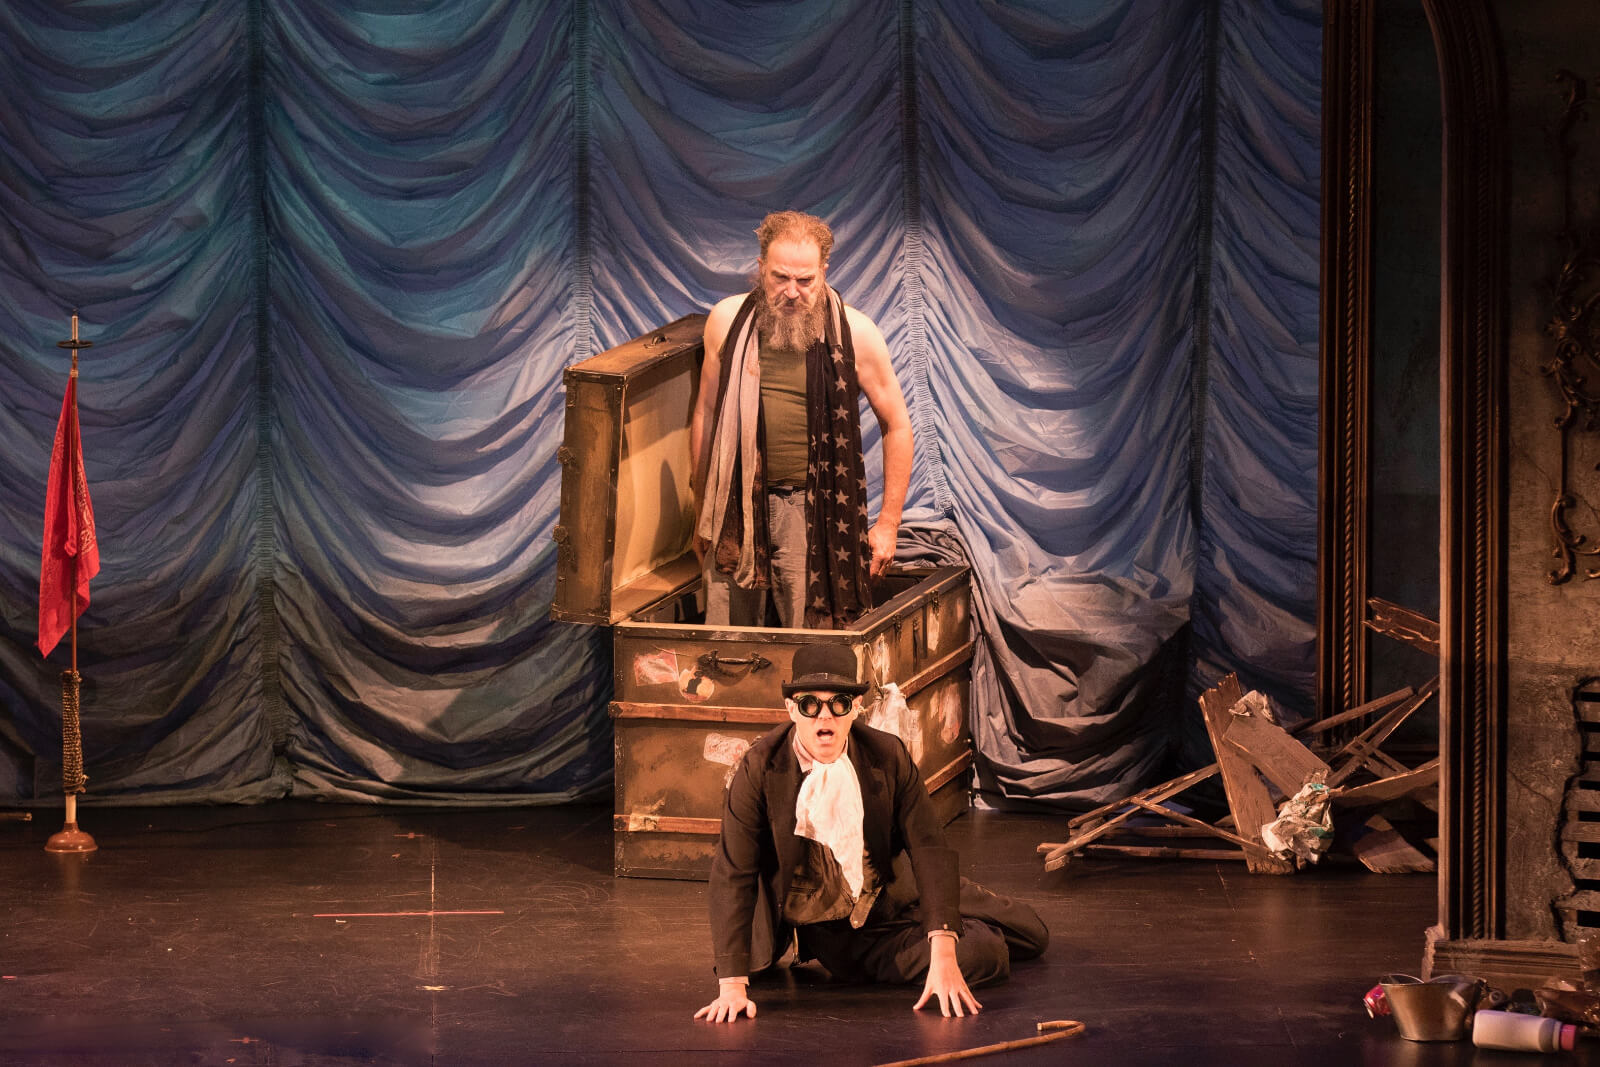 Mandy Patinkin and Taylor Mac in a scene from The Last Two People on Earth: An Apocalyptic Vaudeville. Mandy comes out of a trunk while Taylor sits on the floor, looking terrified.